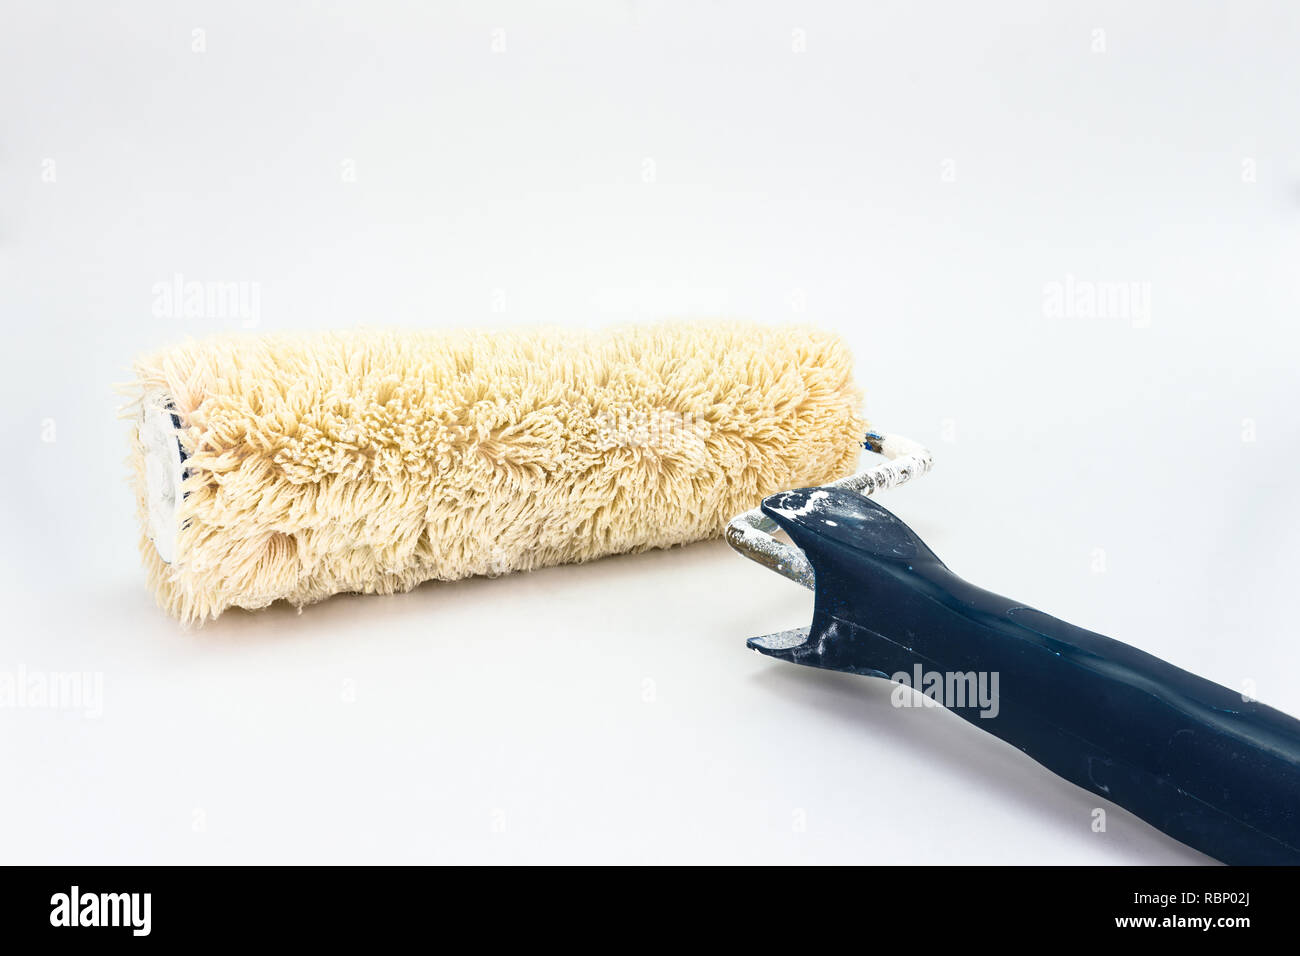 Used, dirty paint roller with a blue handle. Isolated on a white background with a clipping path. - Stock Image